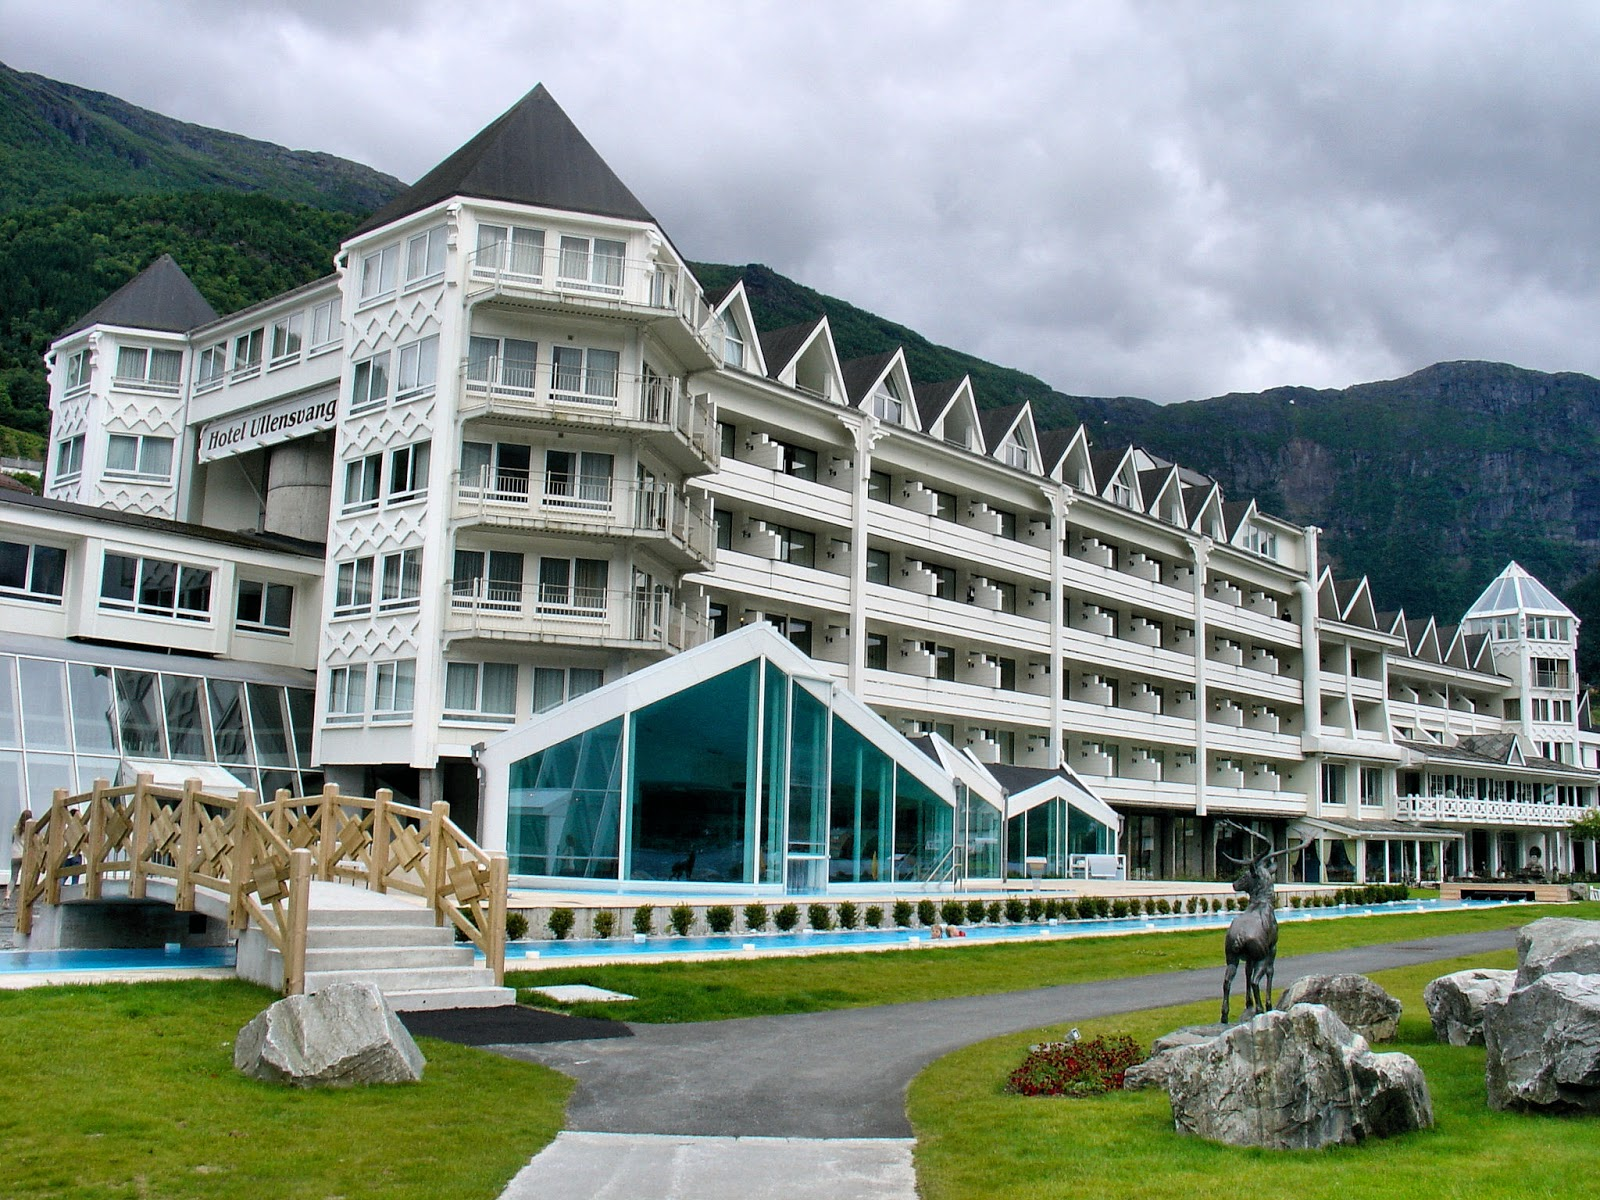 The spectacular Hotel Ullensvang in Lofthus, Norway, on the Hardgangerfjord.